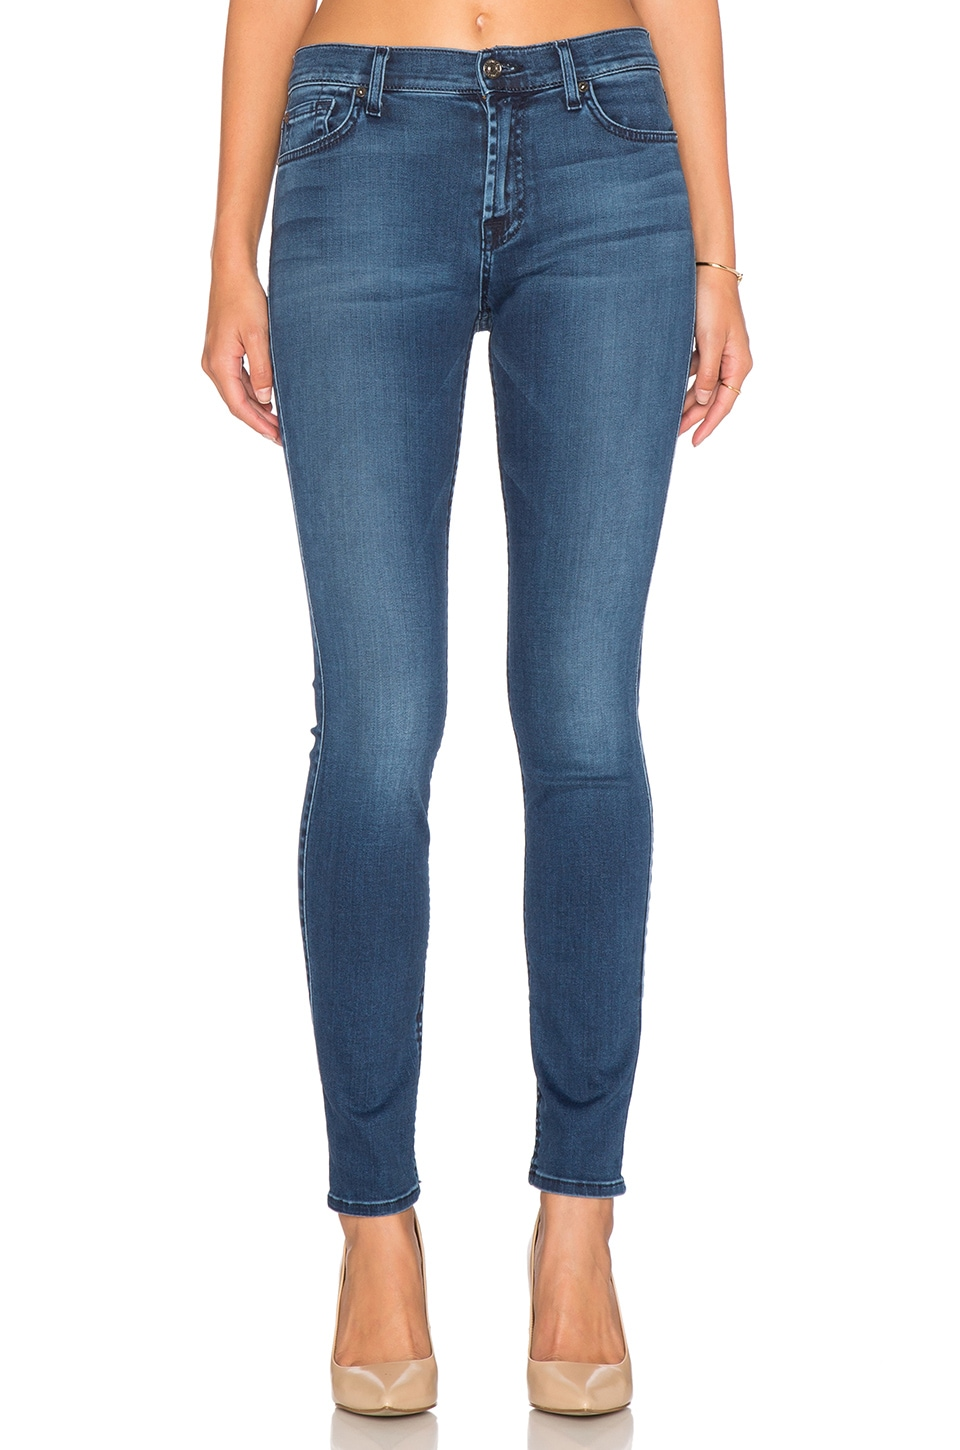 7 For All Mankind Tonal Squiggle Mid Rise Skinny in Pure Medium Vintage Sateen